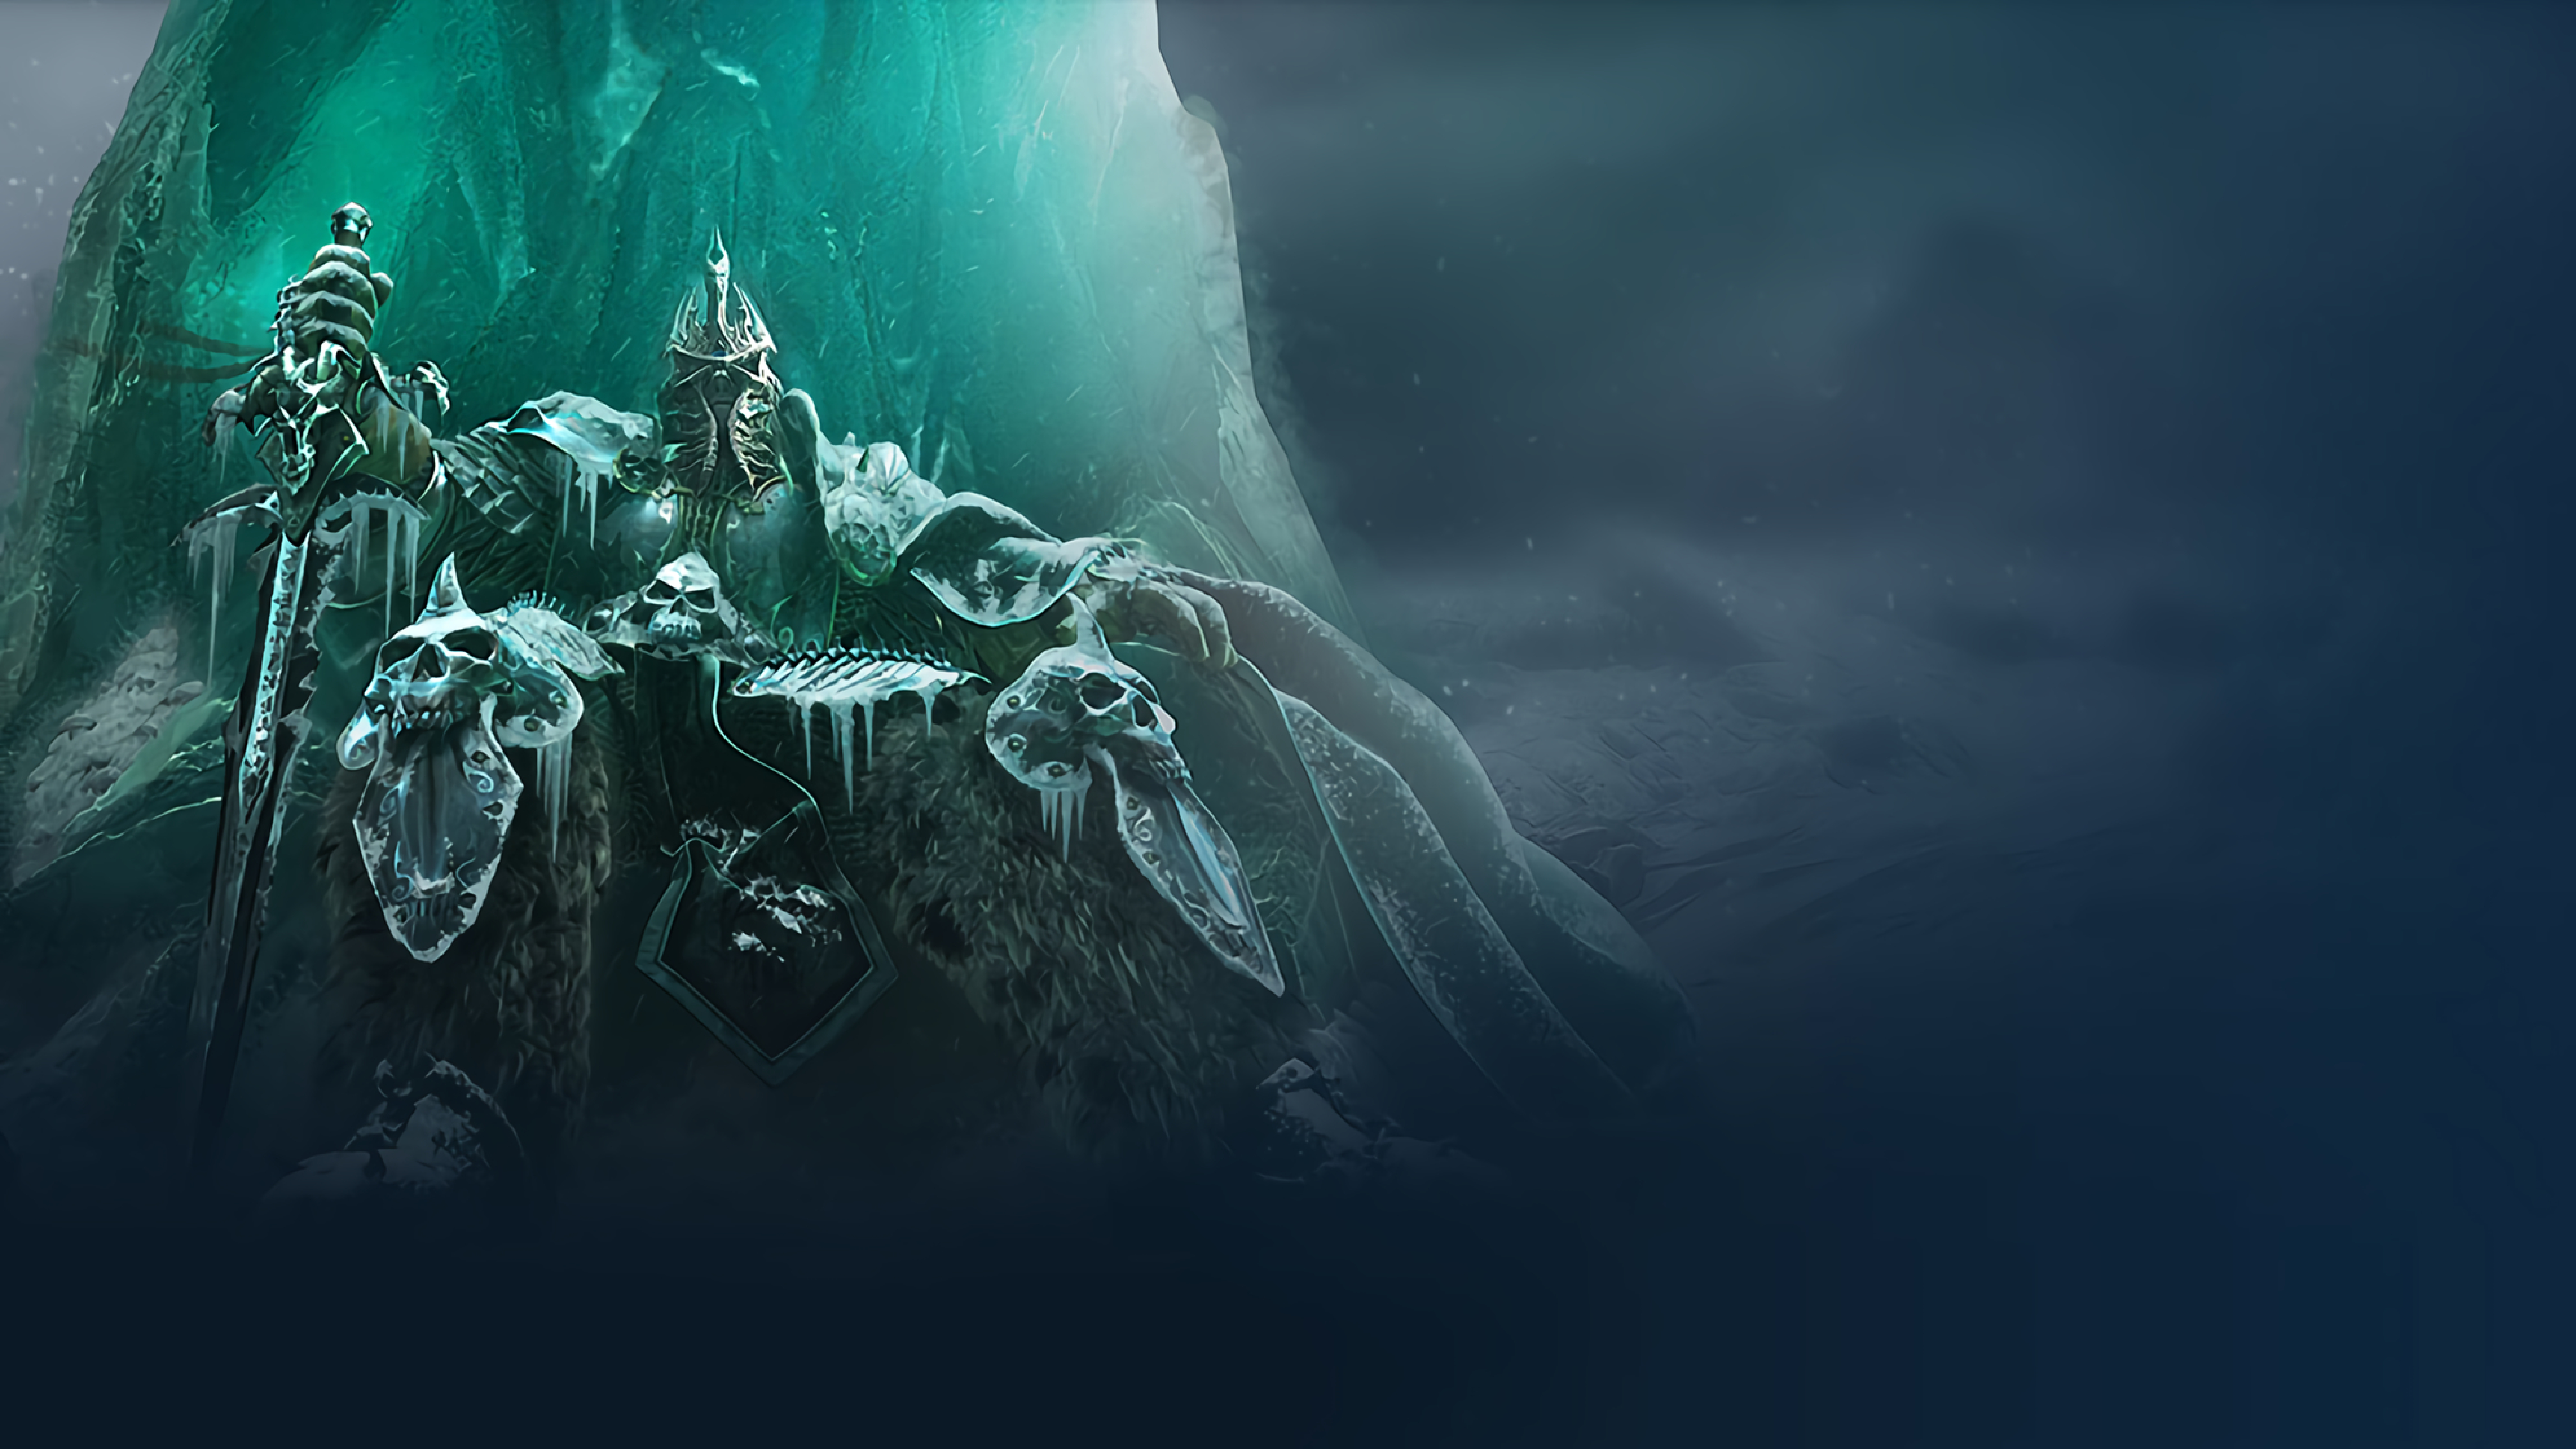 7680x4320 Lich King In Warcraft 8k Wallpaper Hd Games 4k